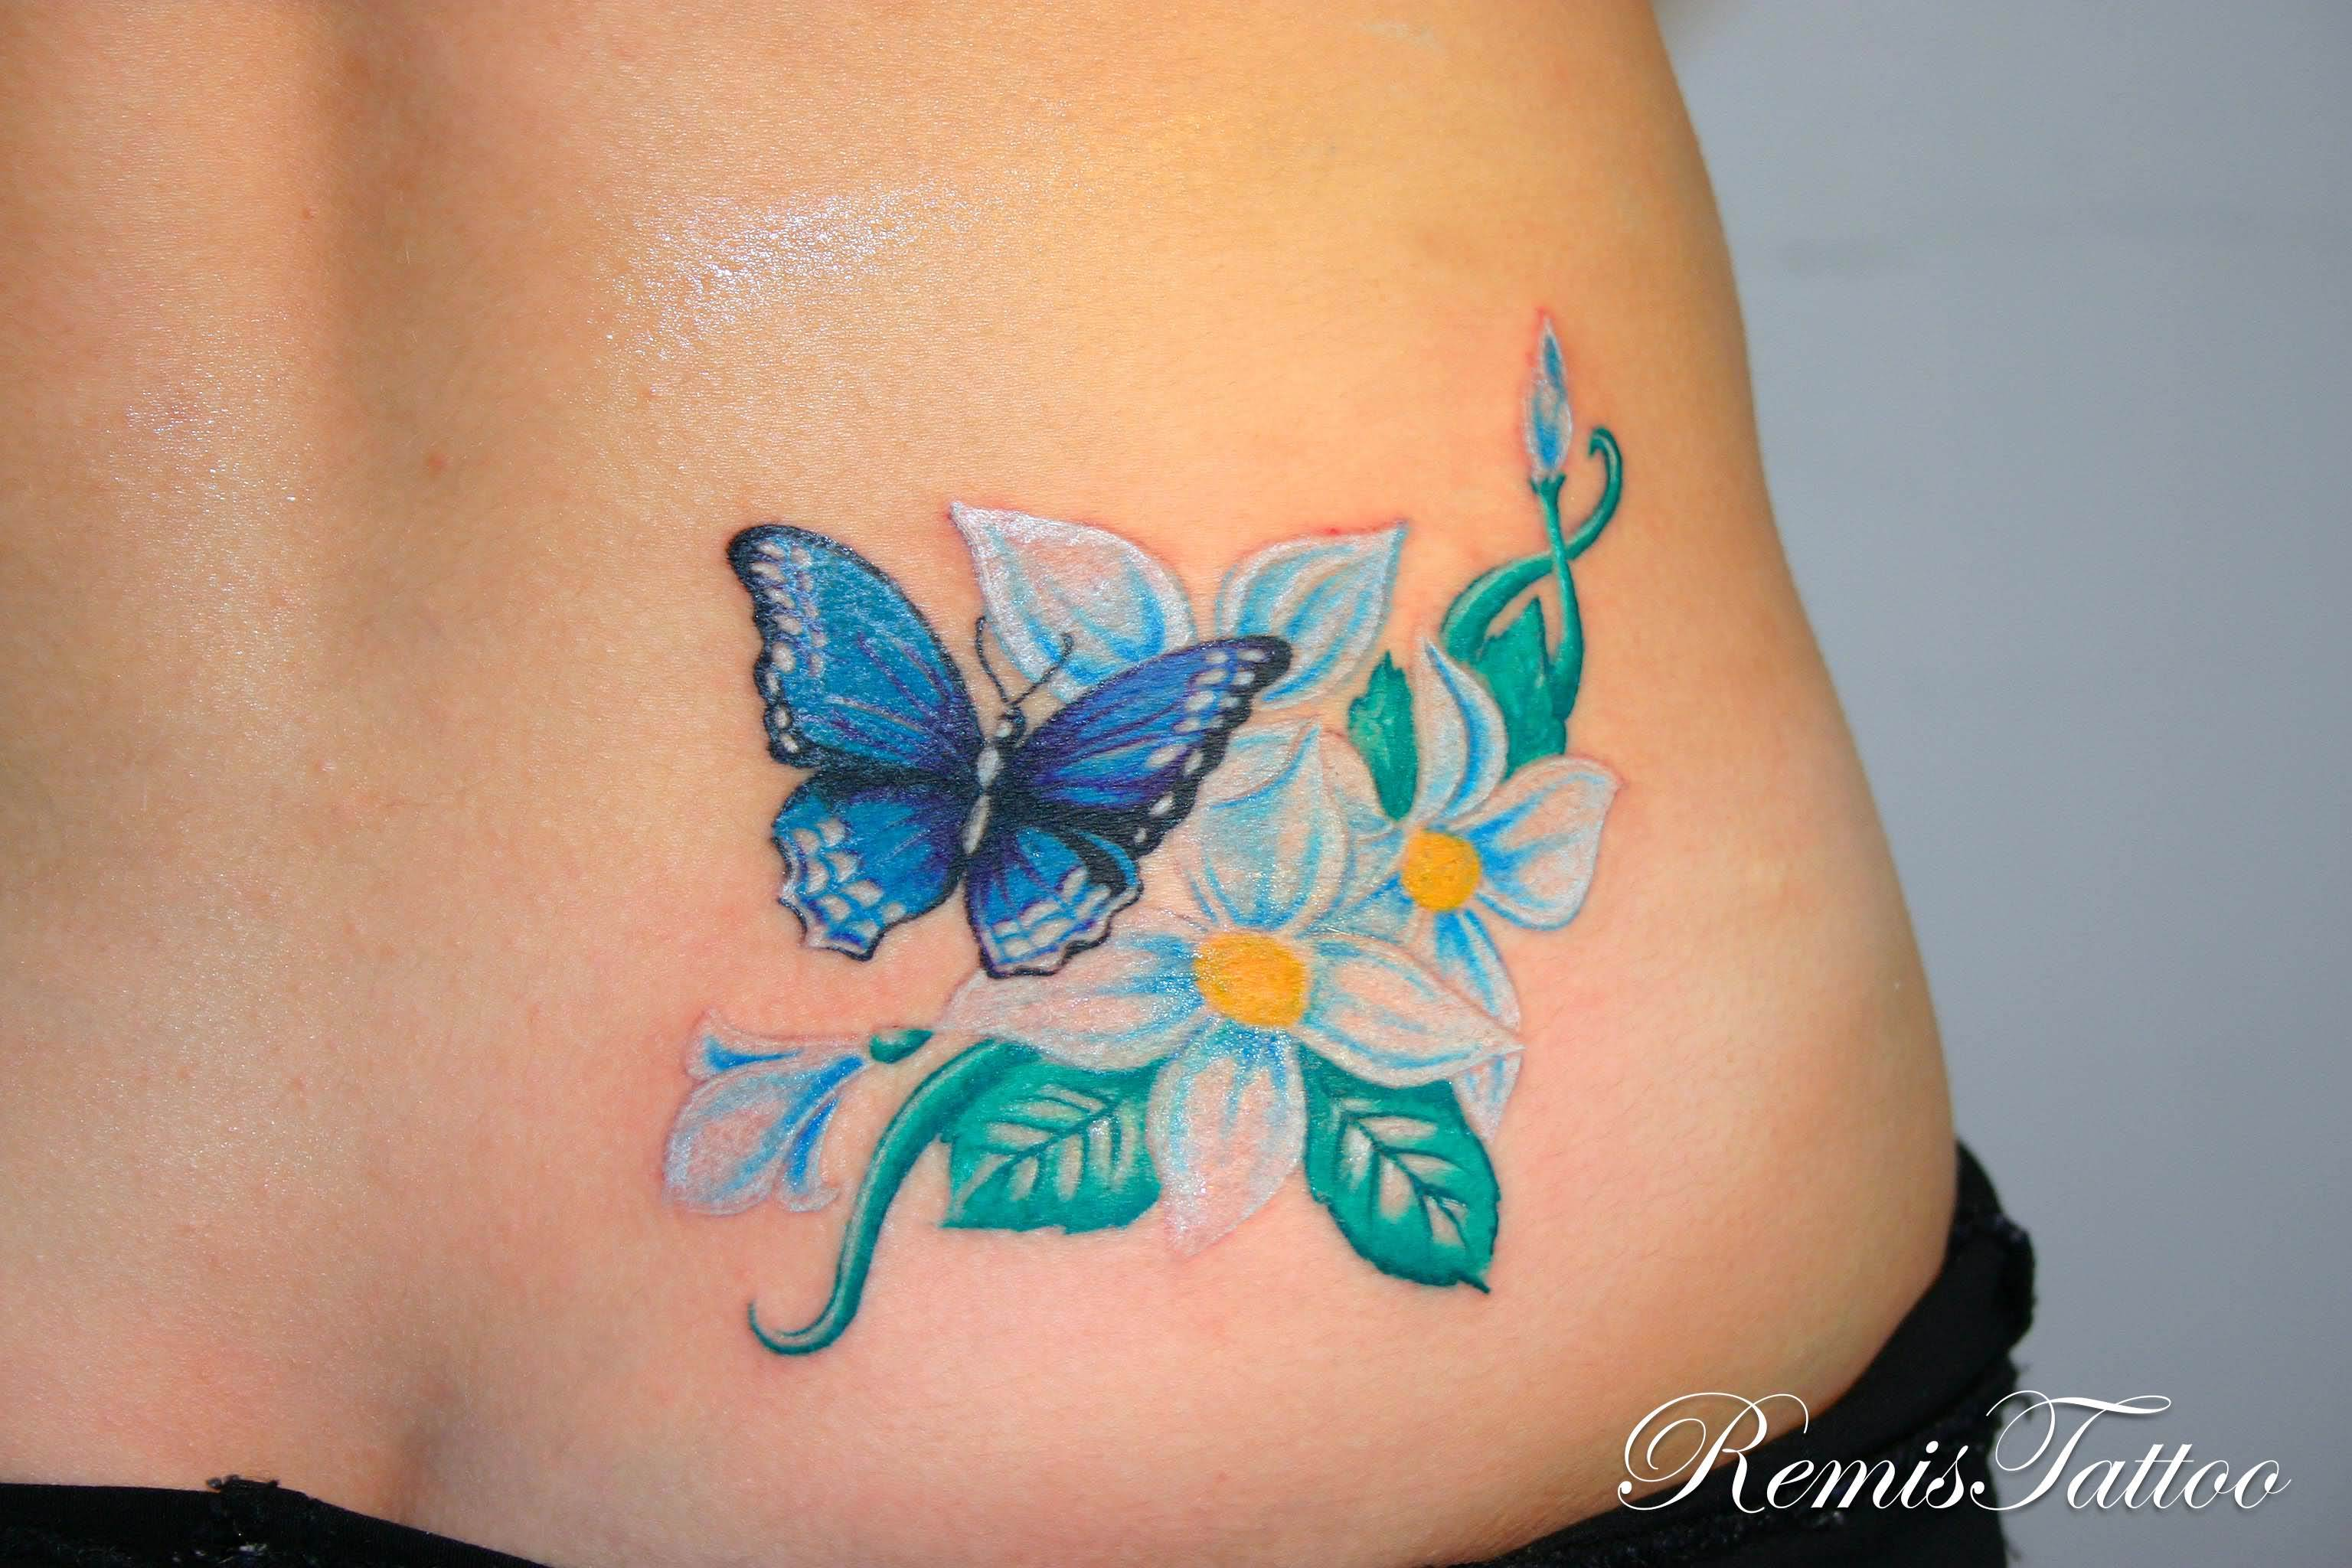 55 butterfly flower tattoos beautiful color butterfly with flowers tattoo izmirmasajfo